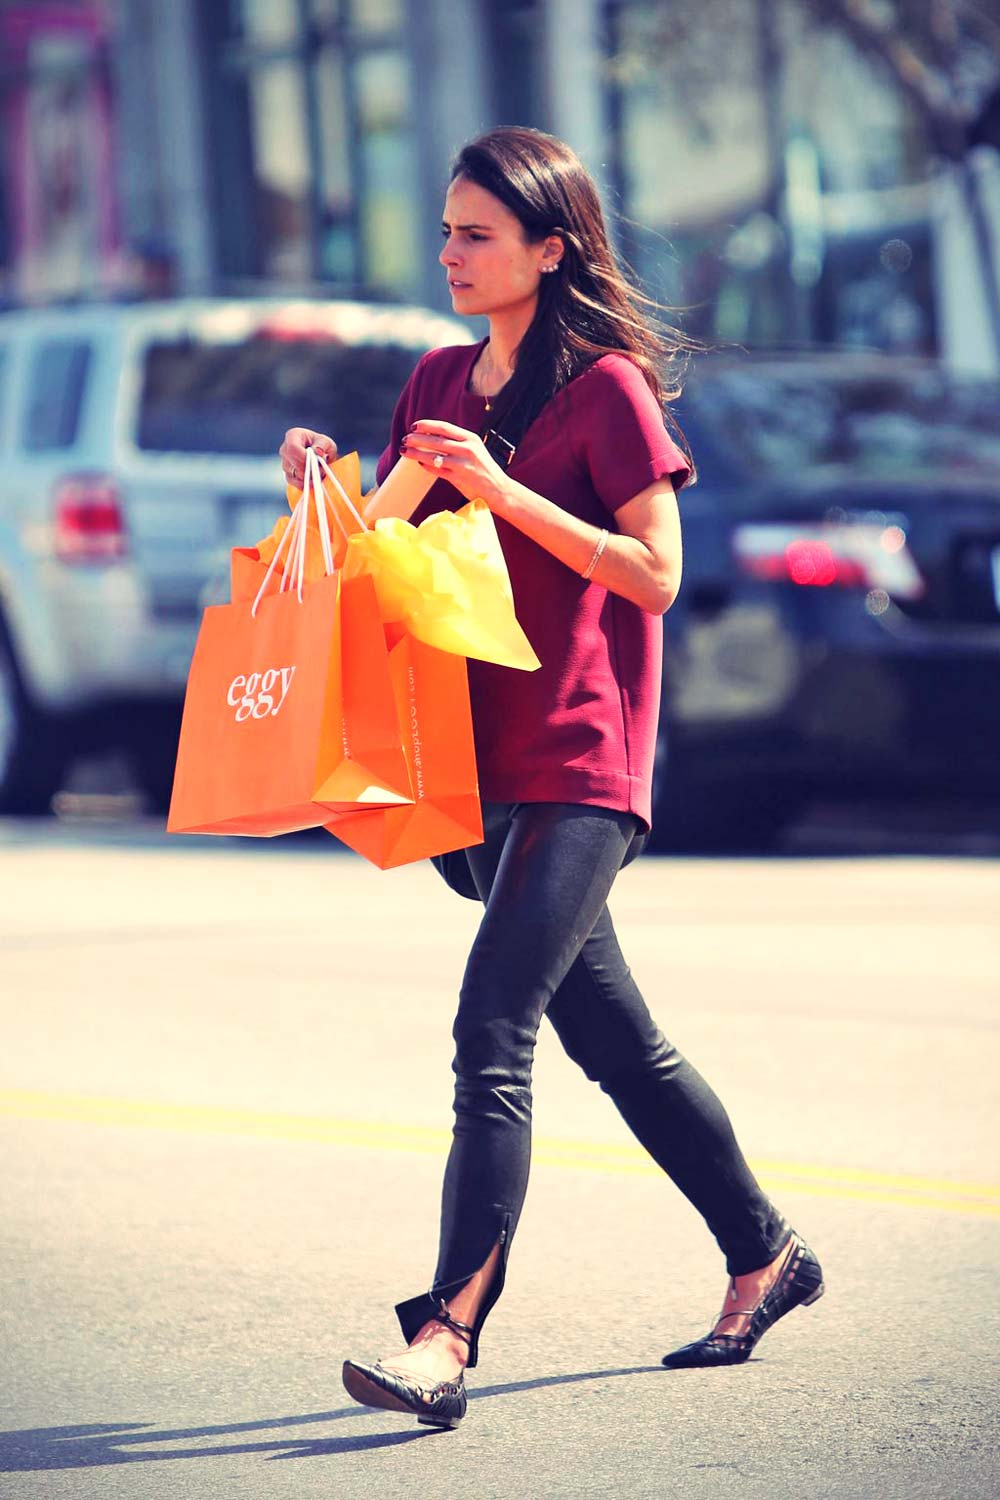 Jordana Brewster shopping at children's boutique Eggy